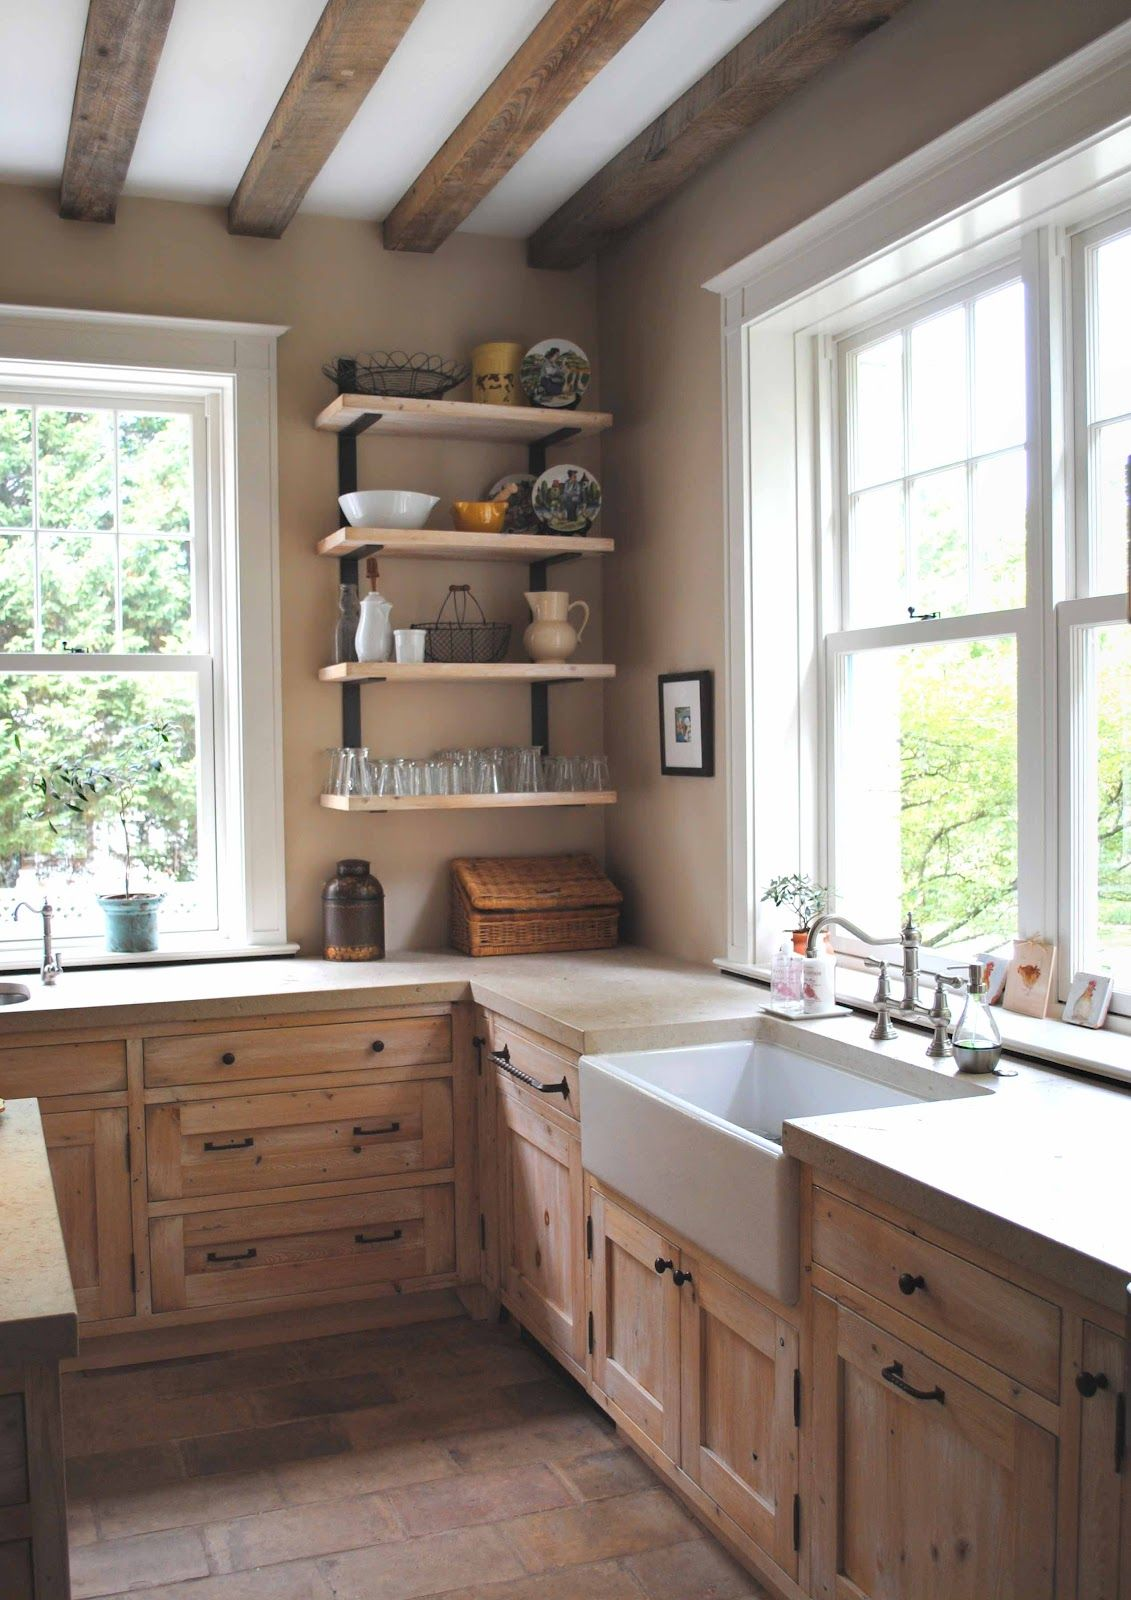 Best Country Kitchen Design Ideas Some Kitchens Are Made To Be 400 x 300